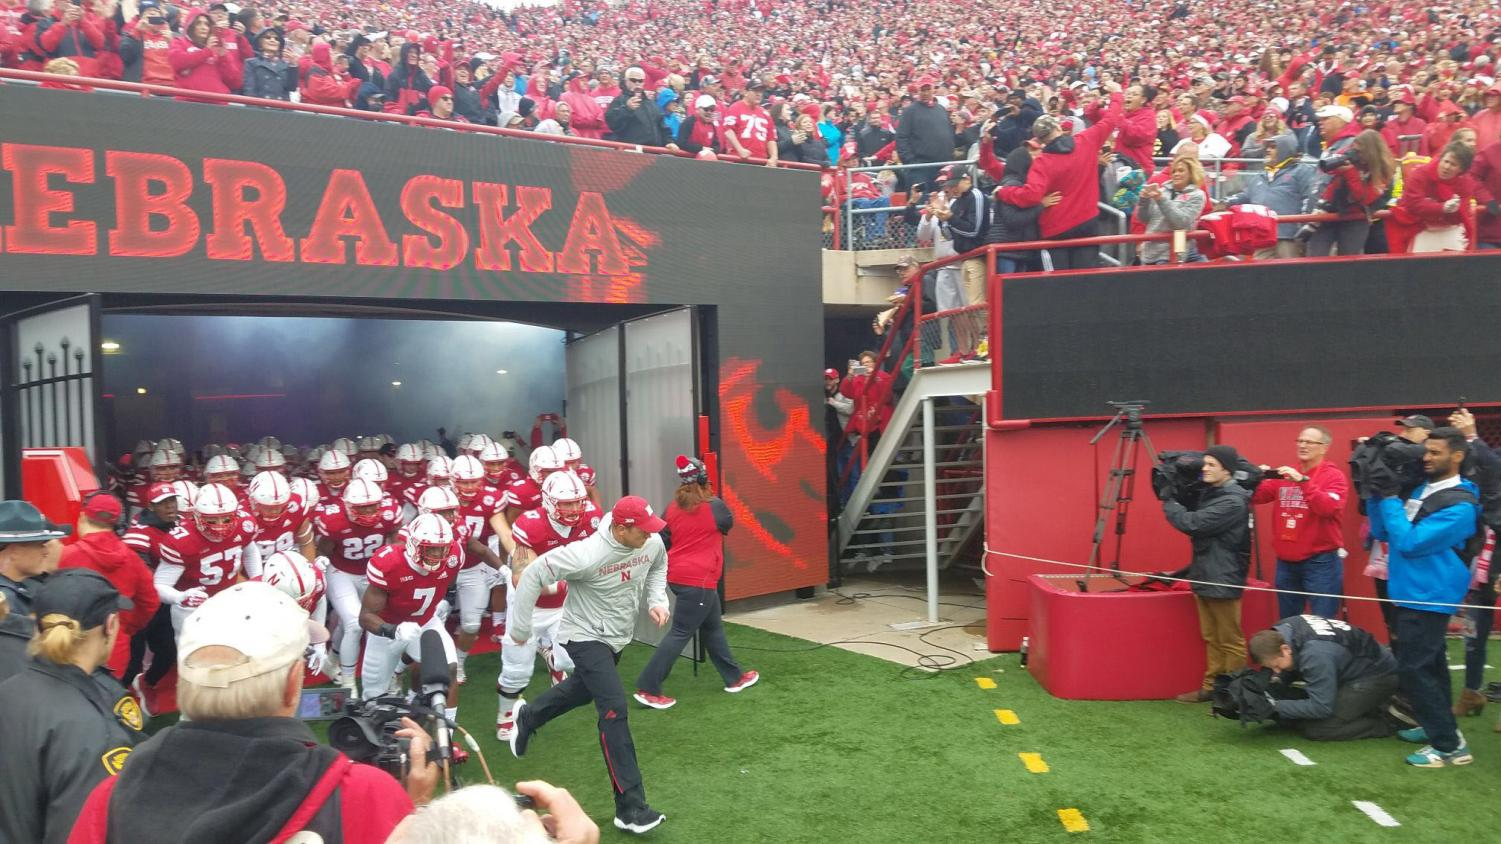 Nebraska Head Coach Scott Frost leads his team out on to the field.